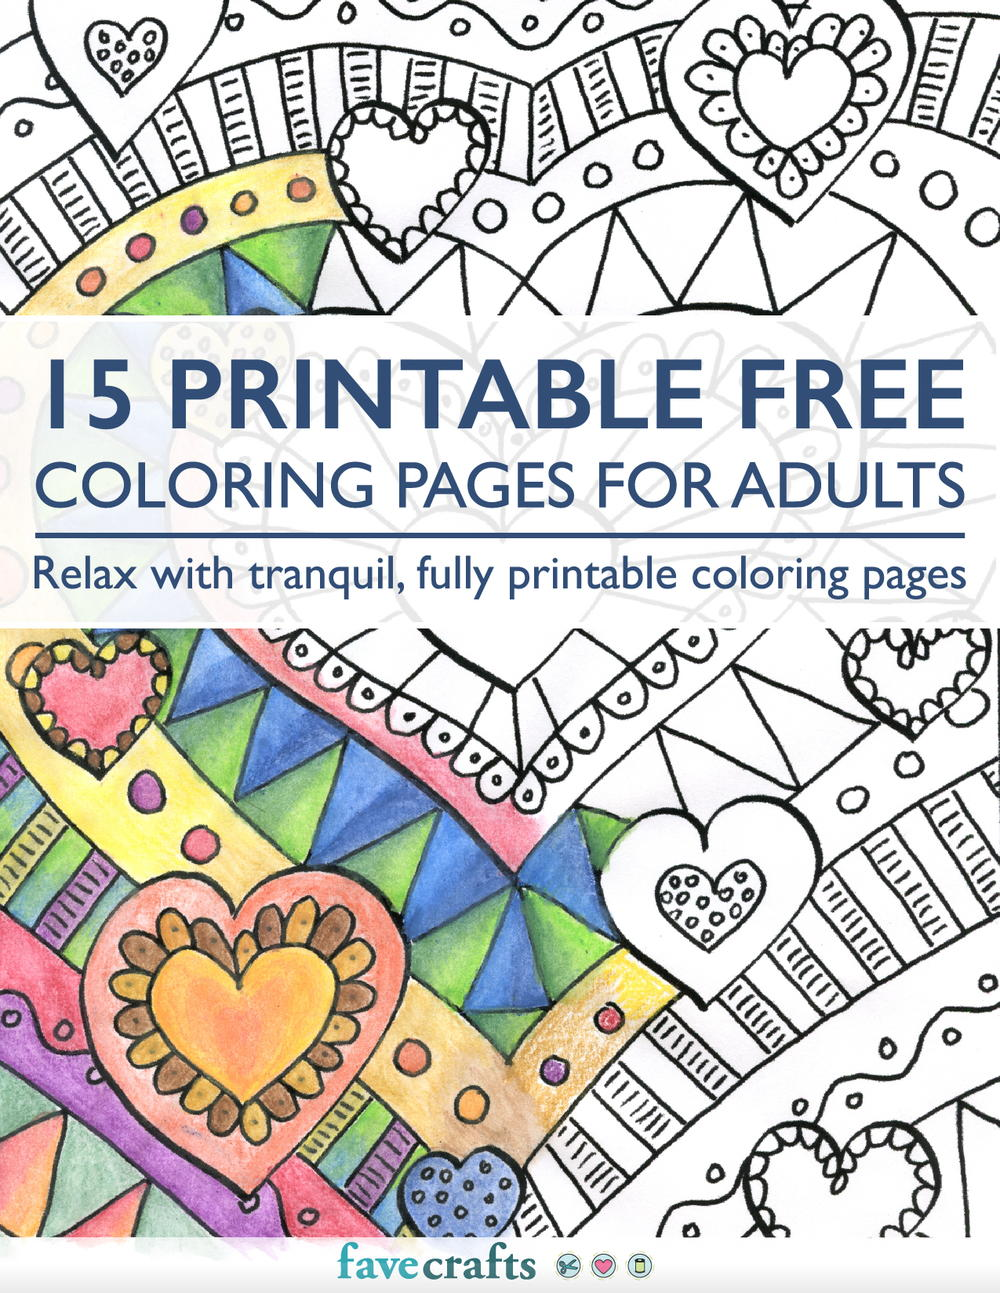 coloring pages pdf printable - 15 printable free coloring pages for adults pdf